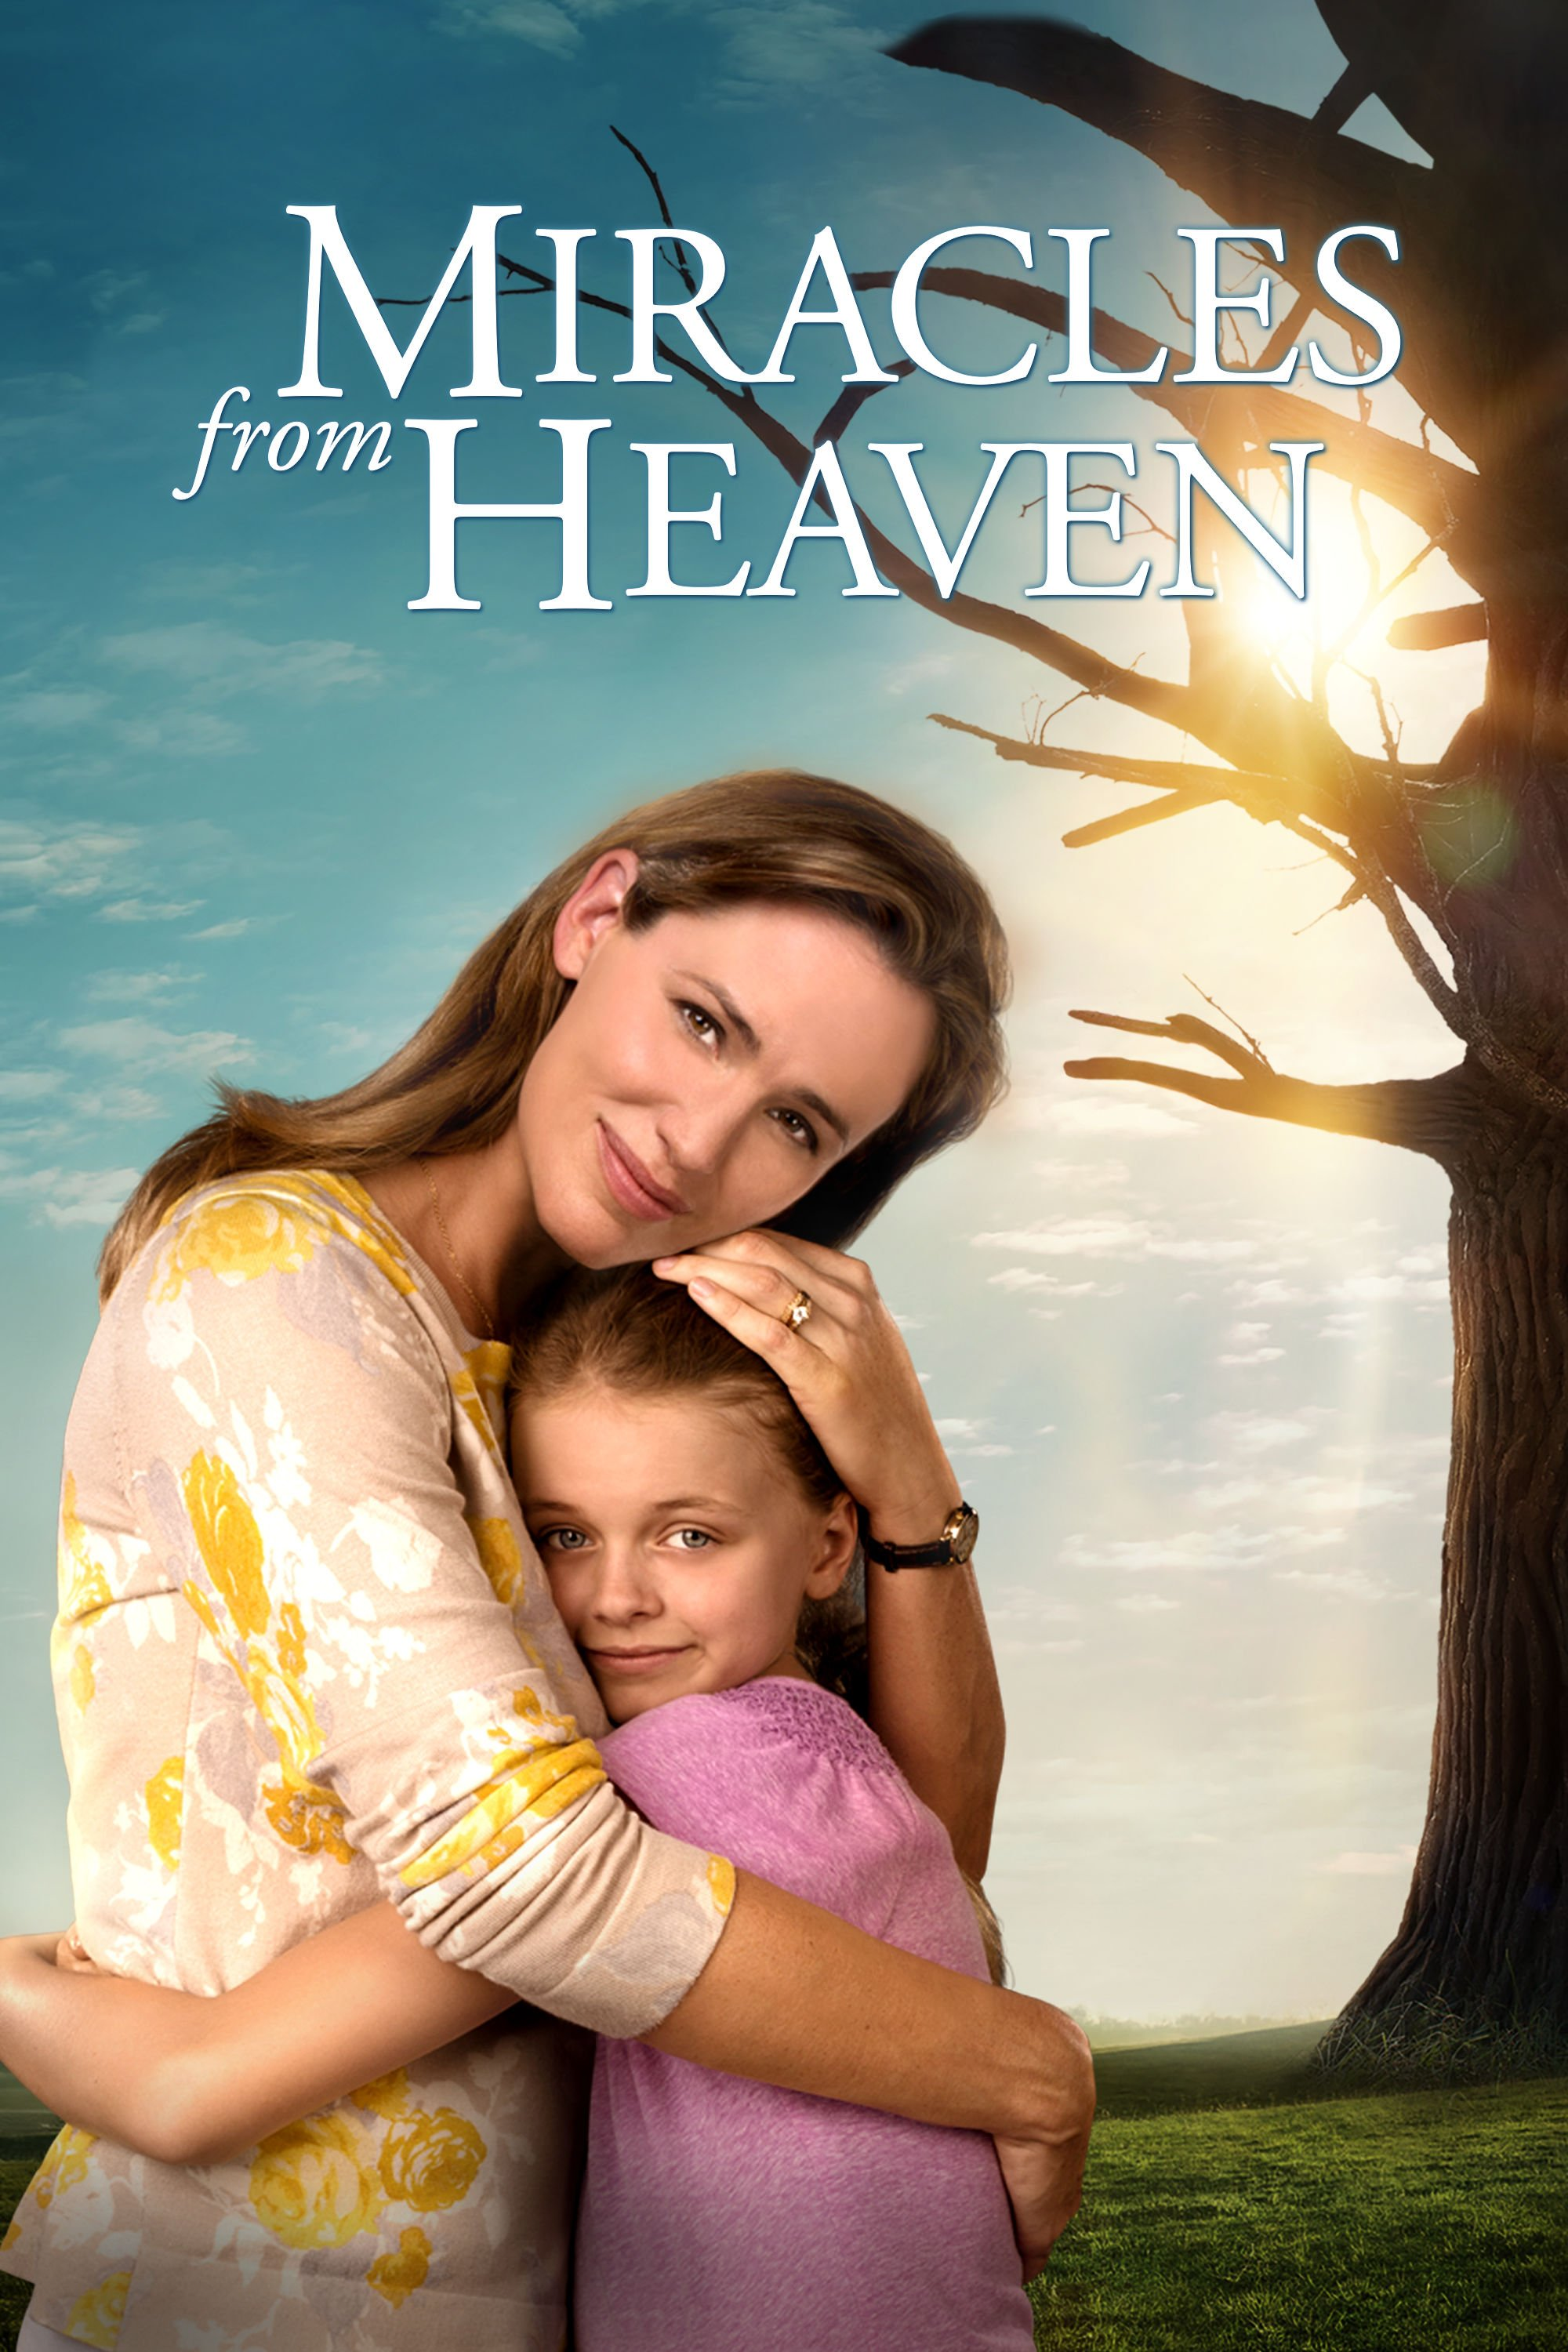 miracles-from-heaven-filming-locations-poster